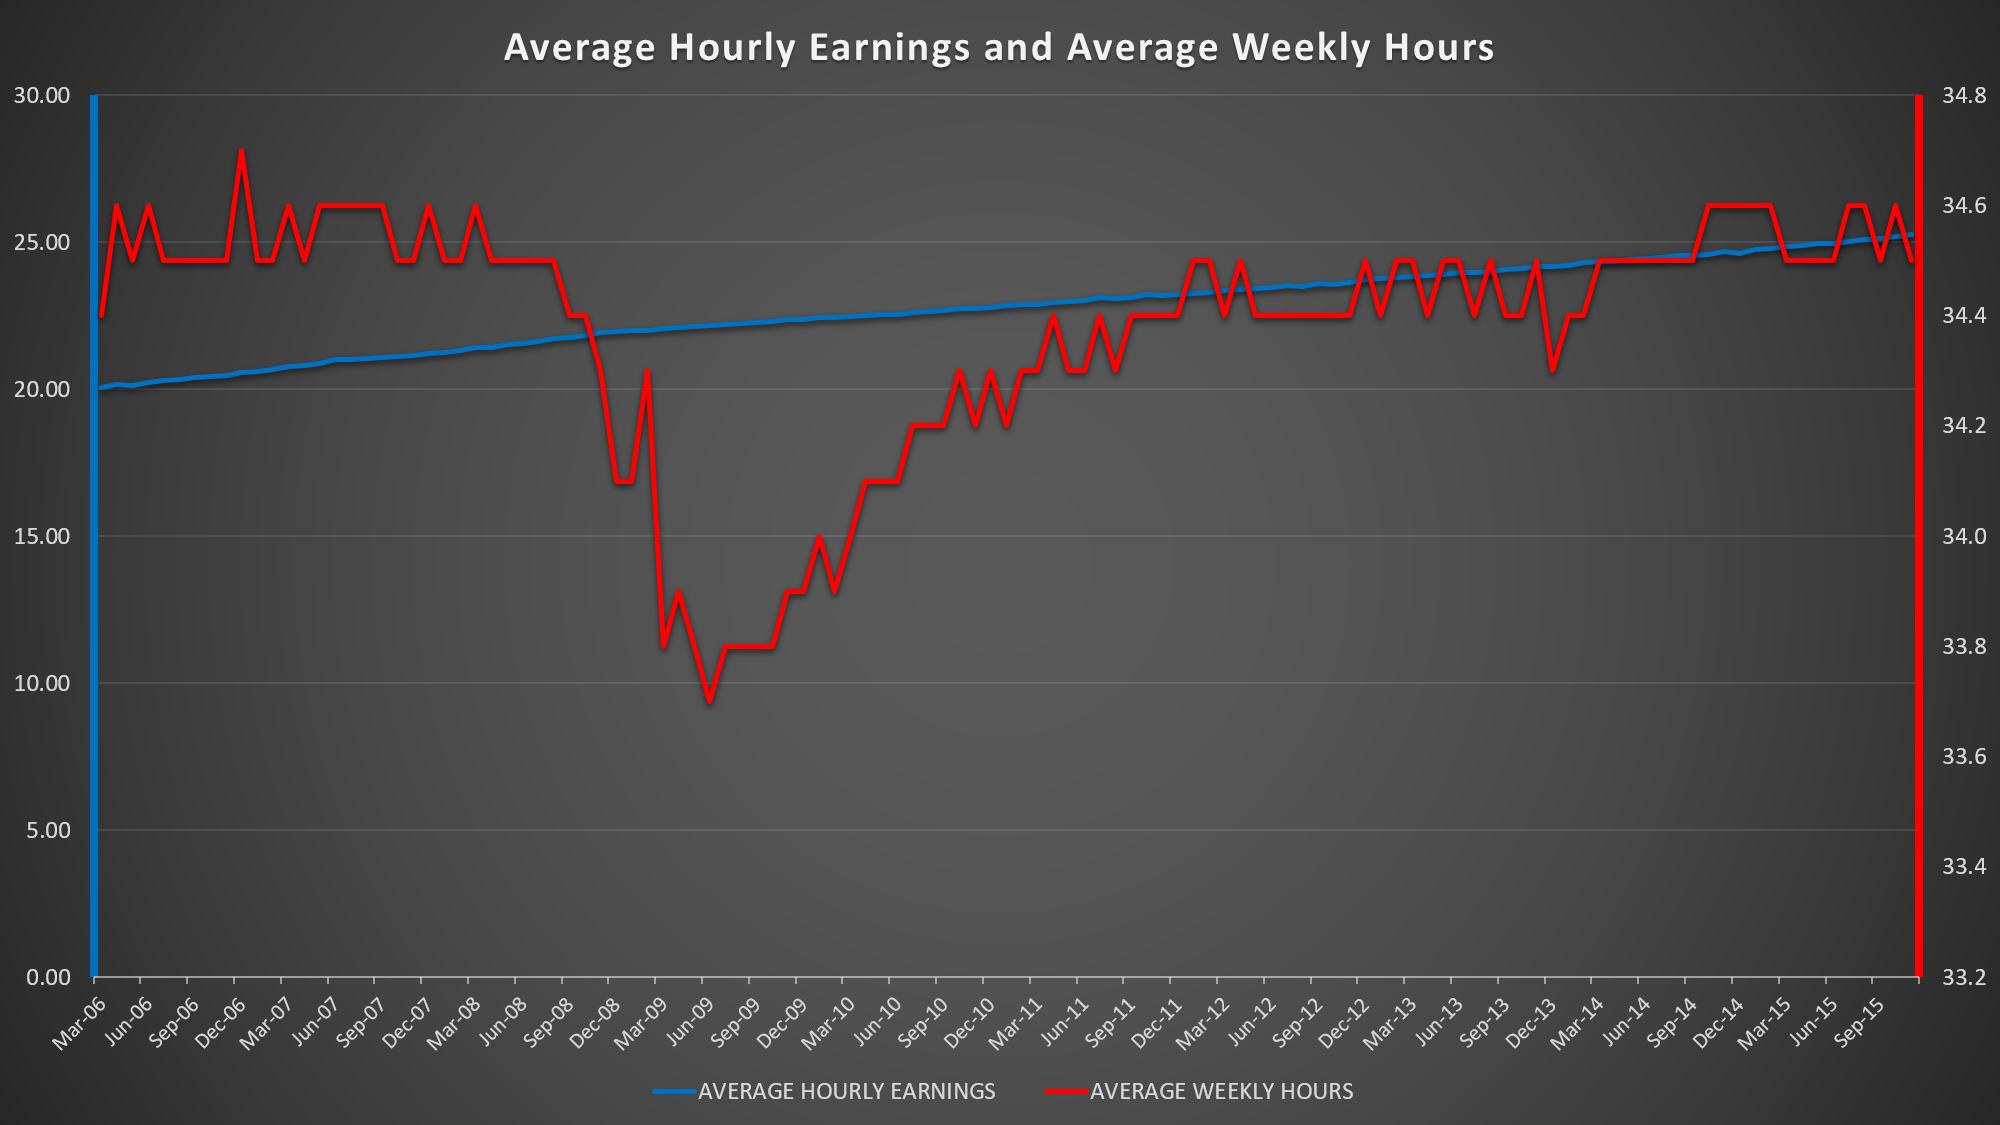 Average Hourly Earnings and Average Weekly Hours